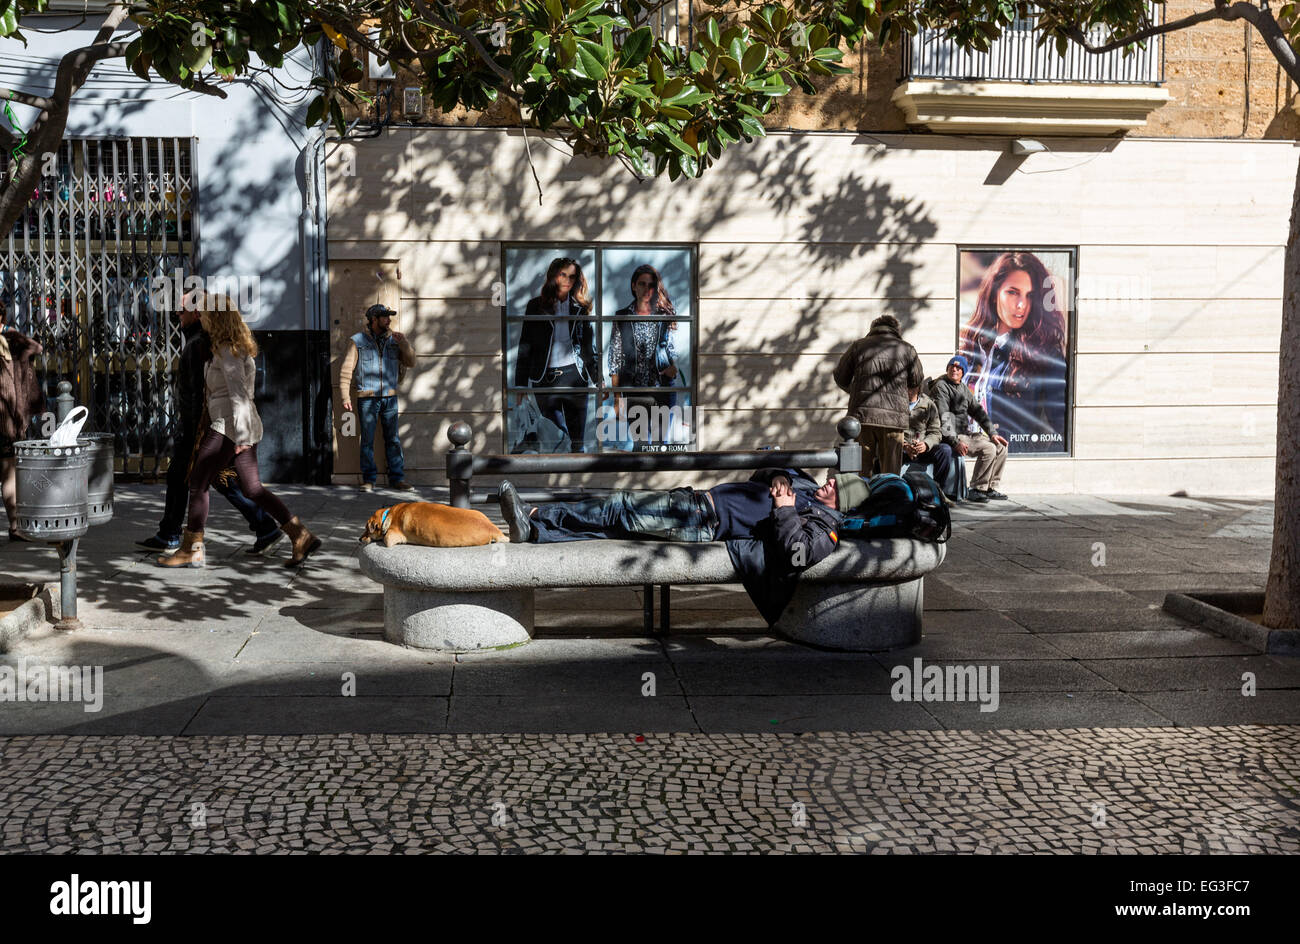 Man having a siesta with his dog in a bank in Cadiz - Stock Image